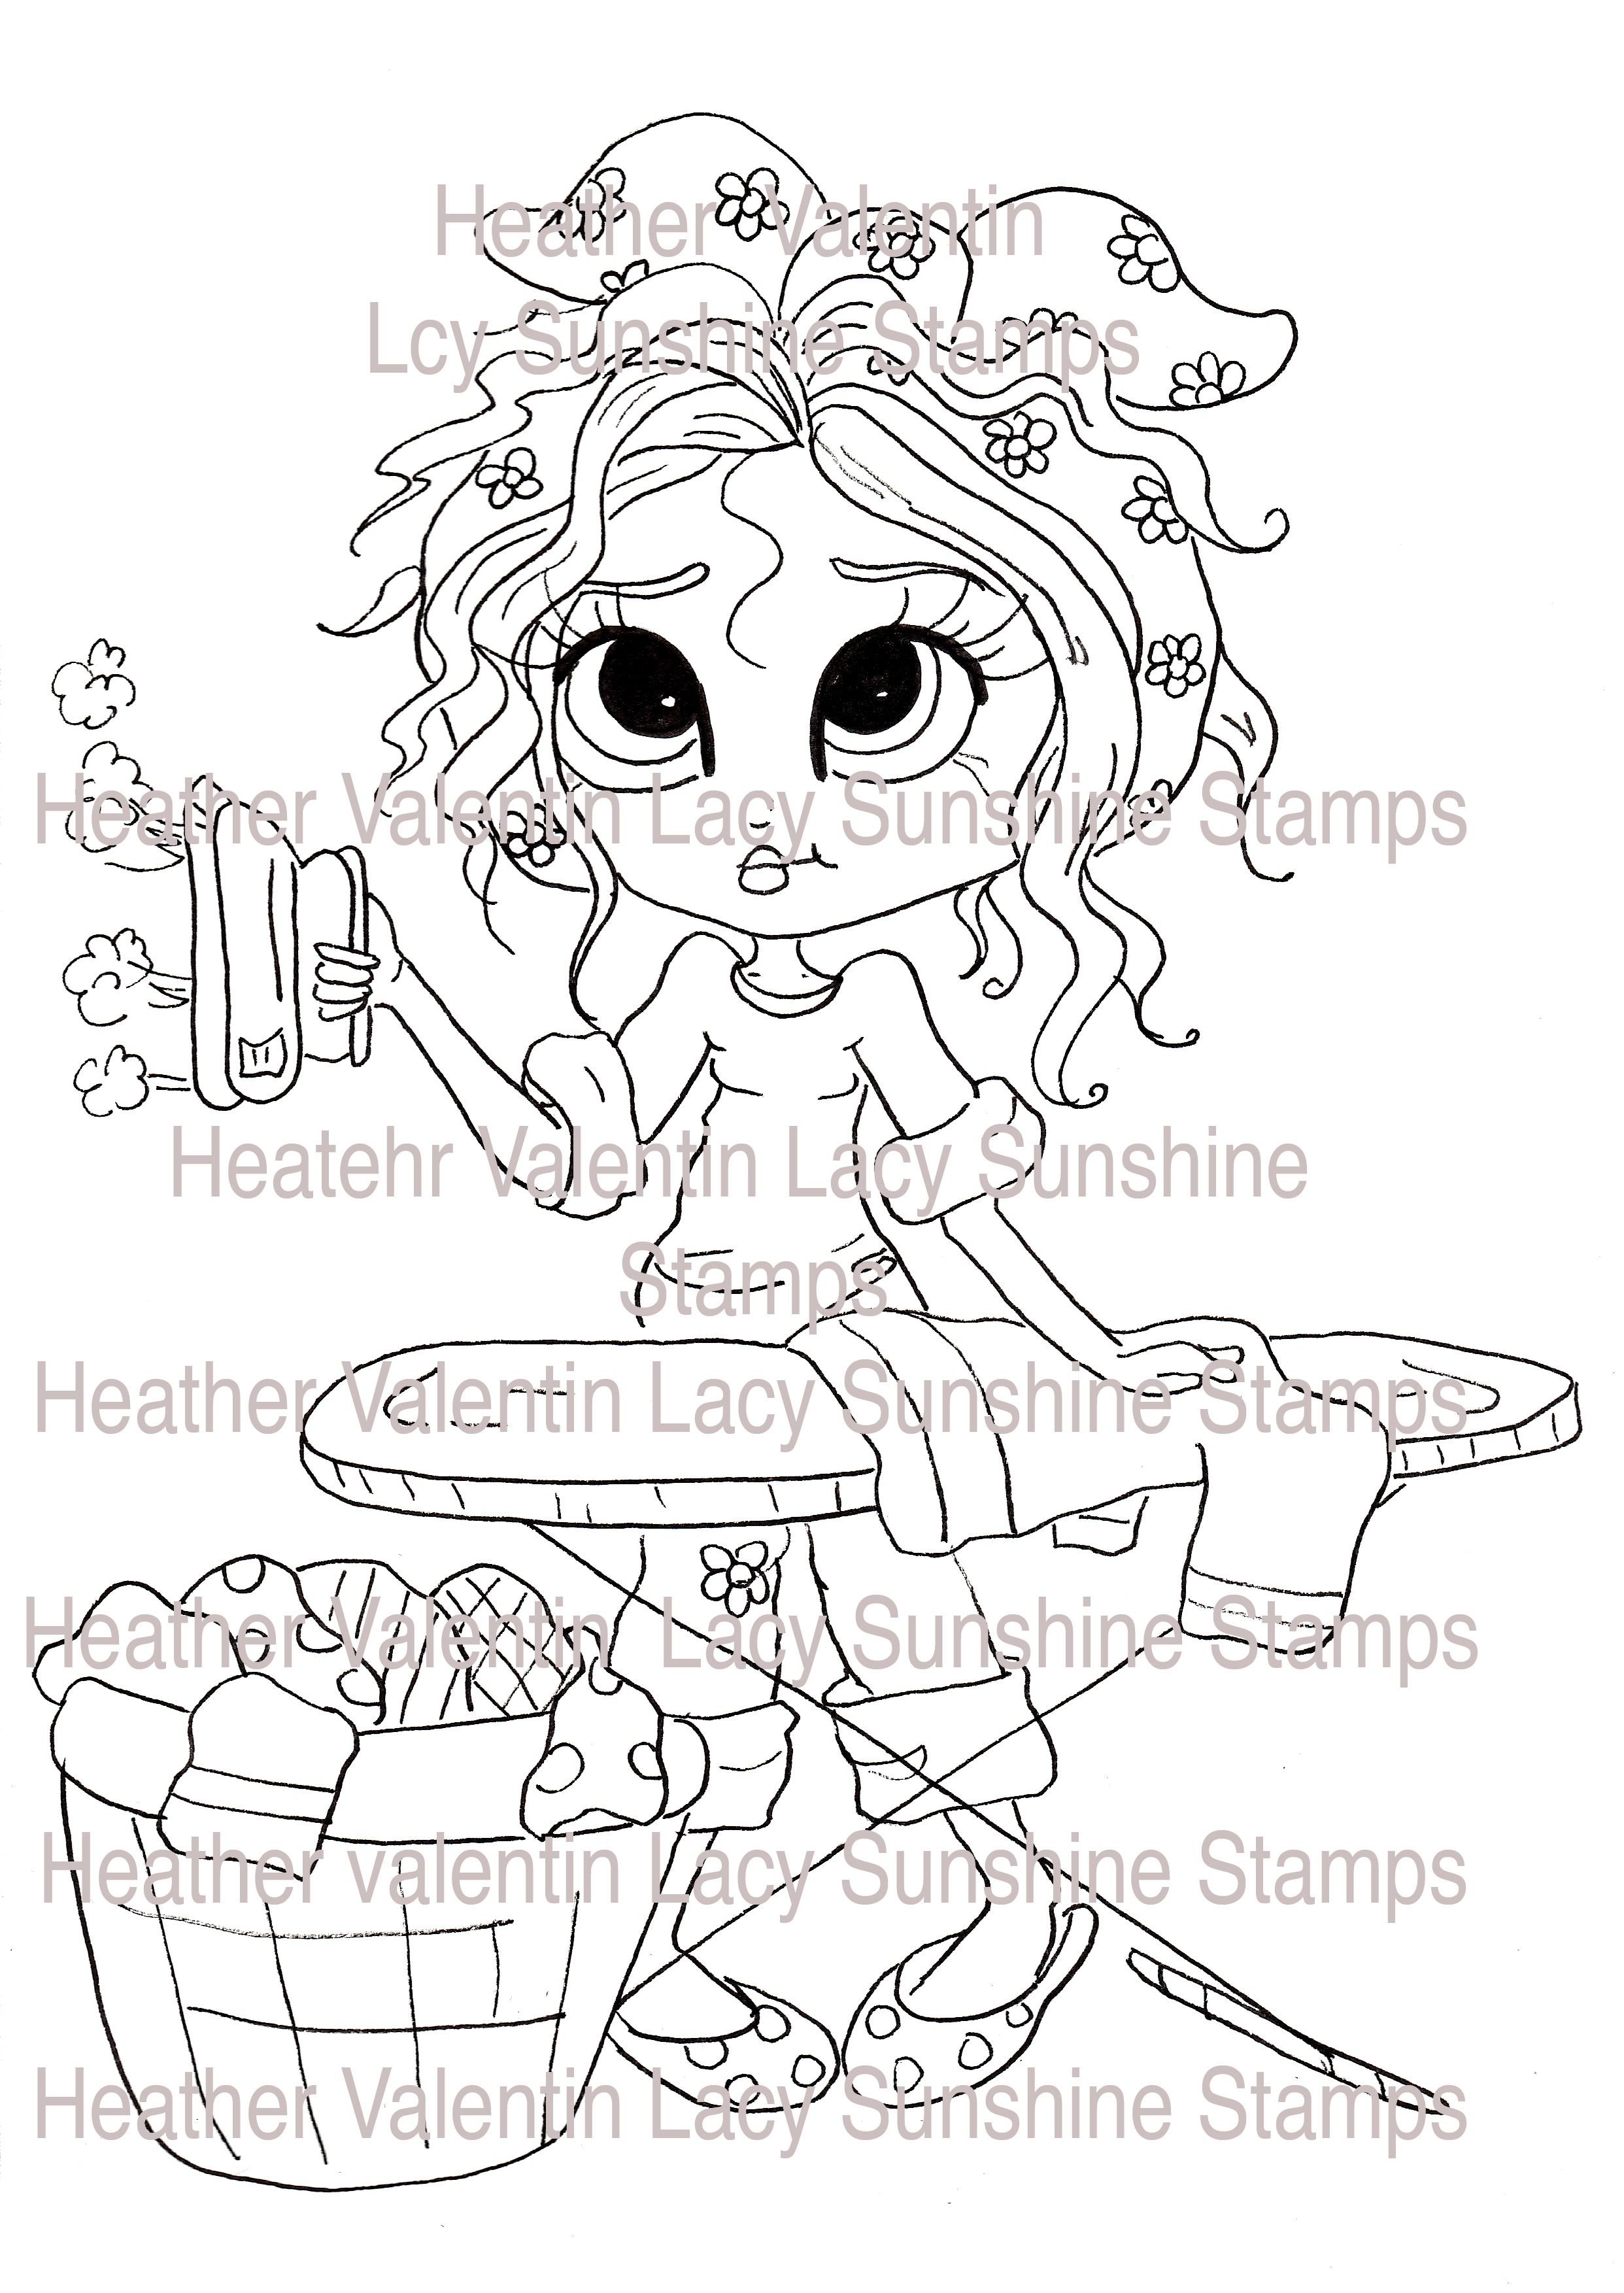 Lacy Sunshine Coloring Pages Learning How To Read